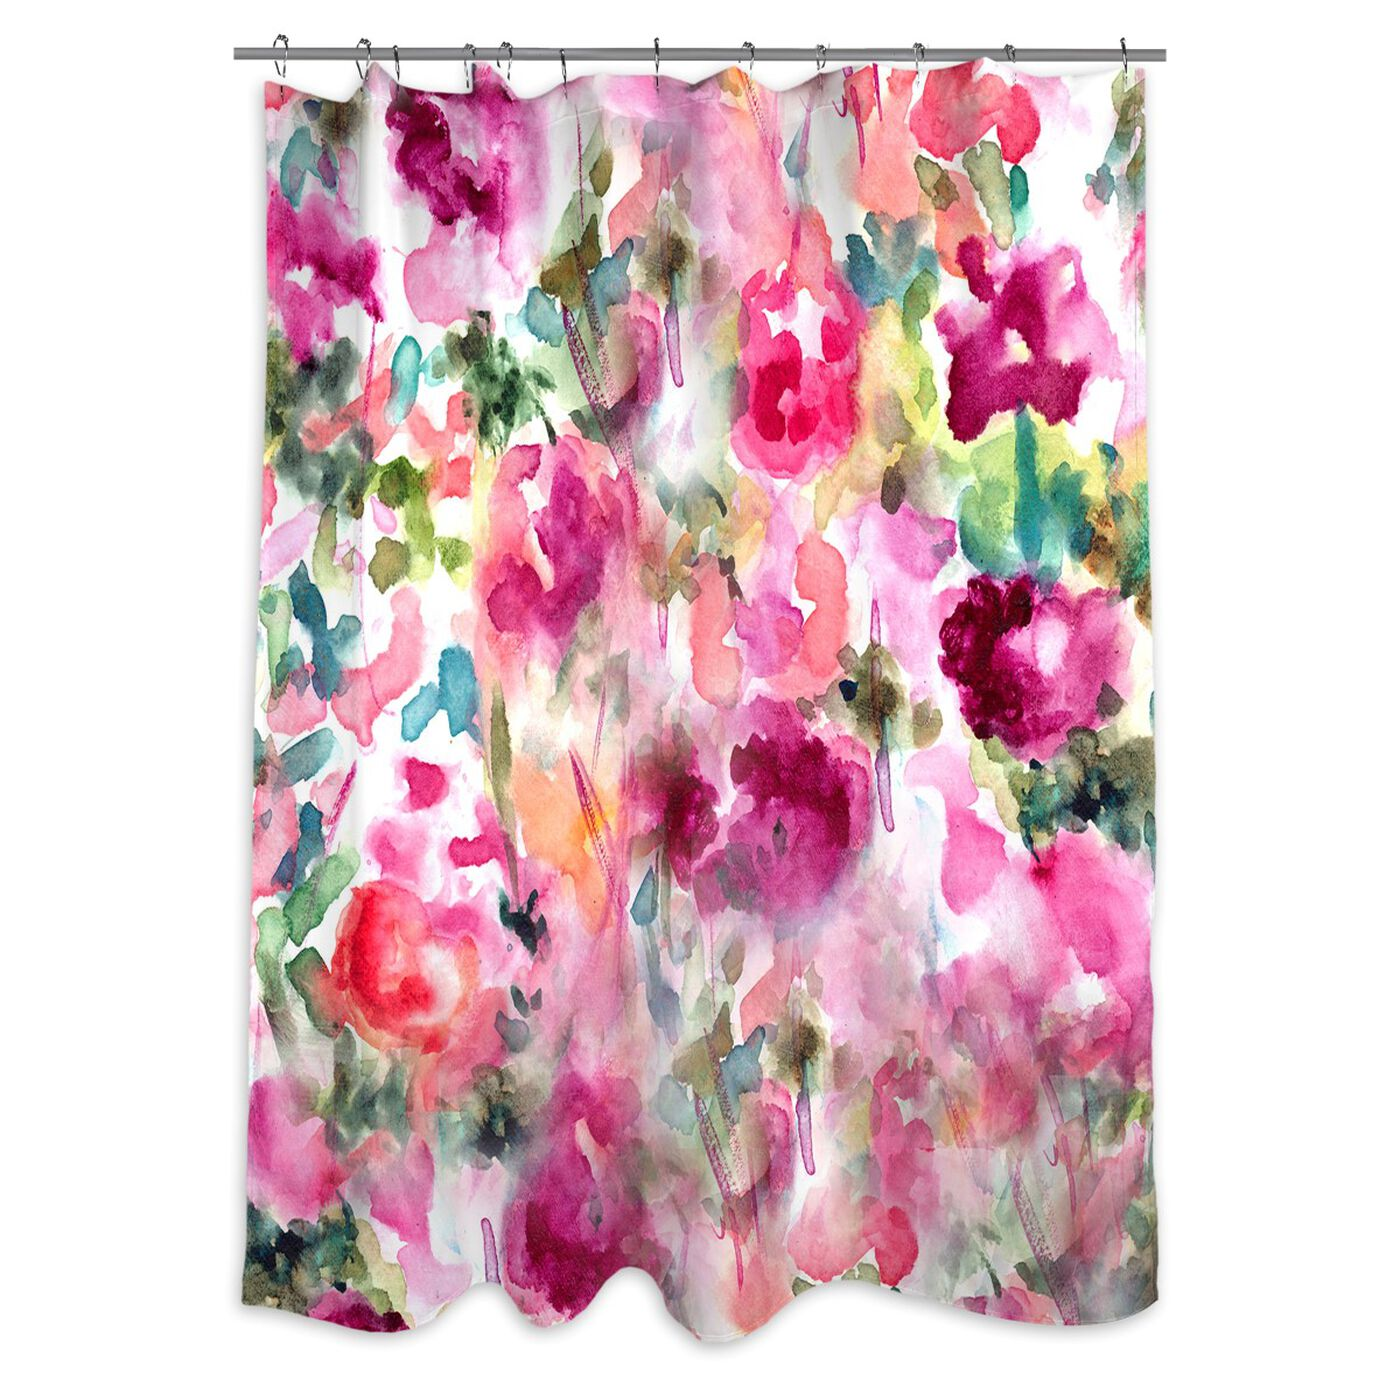 In Wonderland Shower Curtain